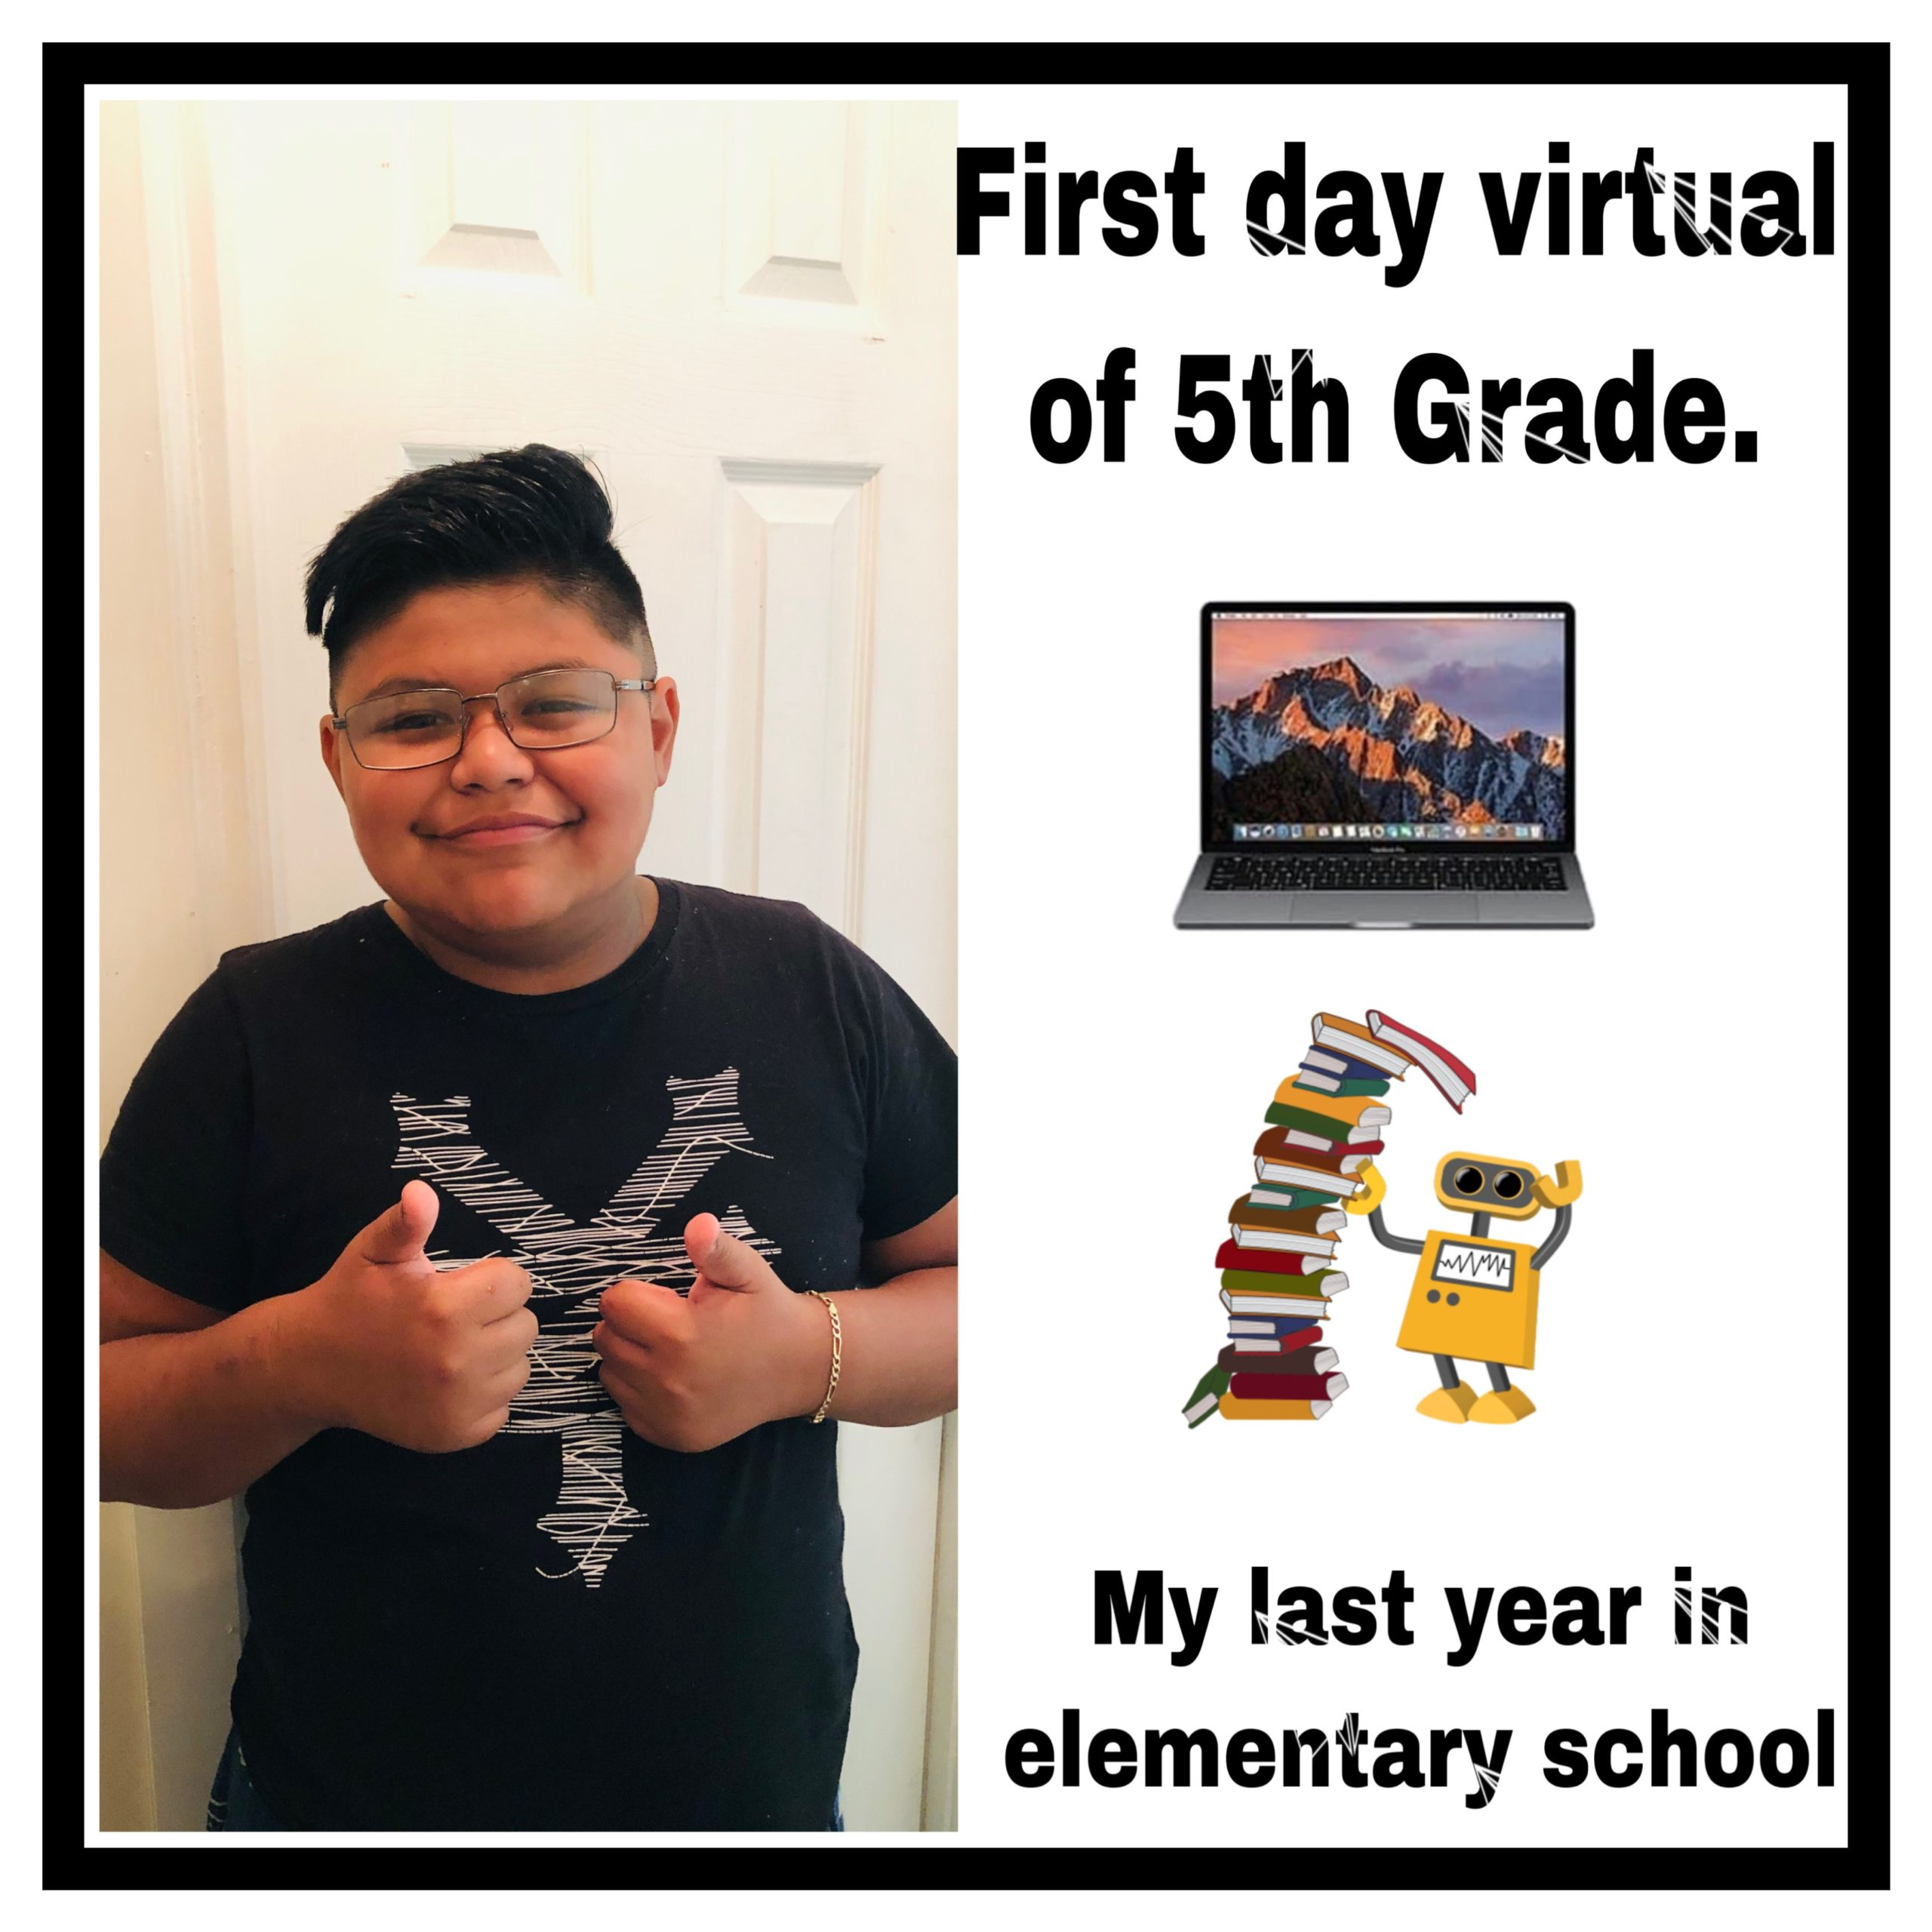 a student smiling and giving a thumbs up with text that says first day virtual of 5th grade my last year in elementary school